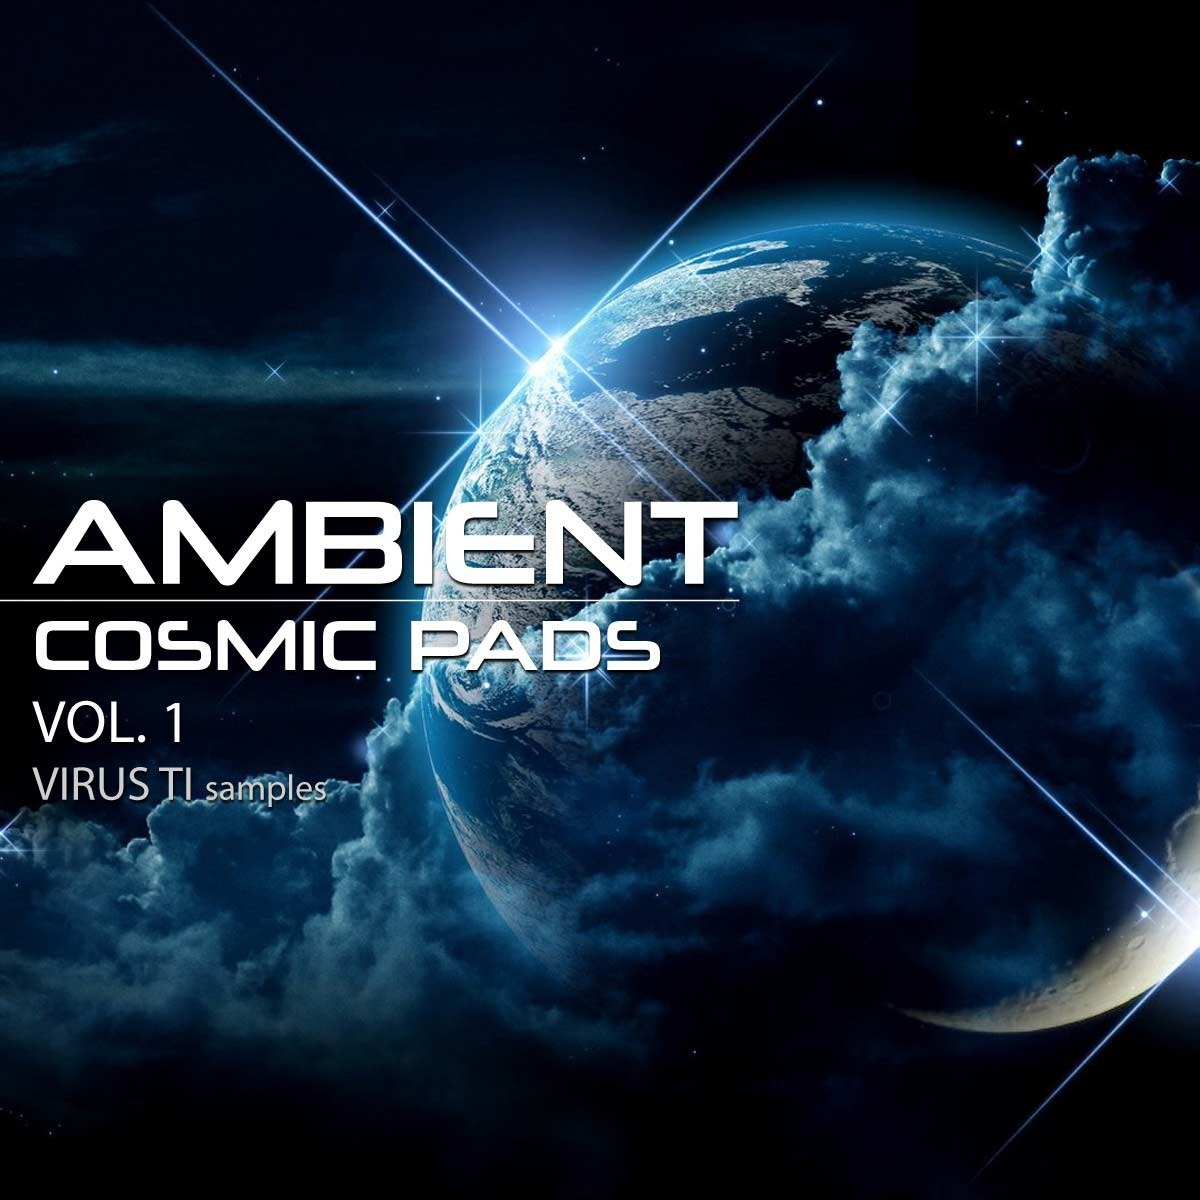 Ambient Cosmic Pads Vol 1